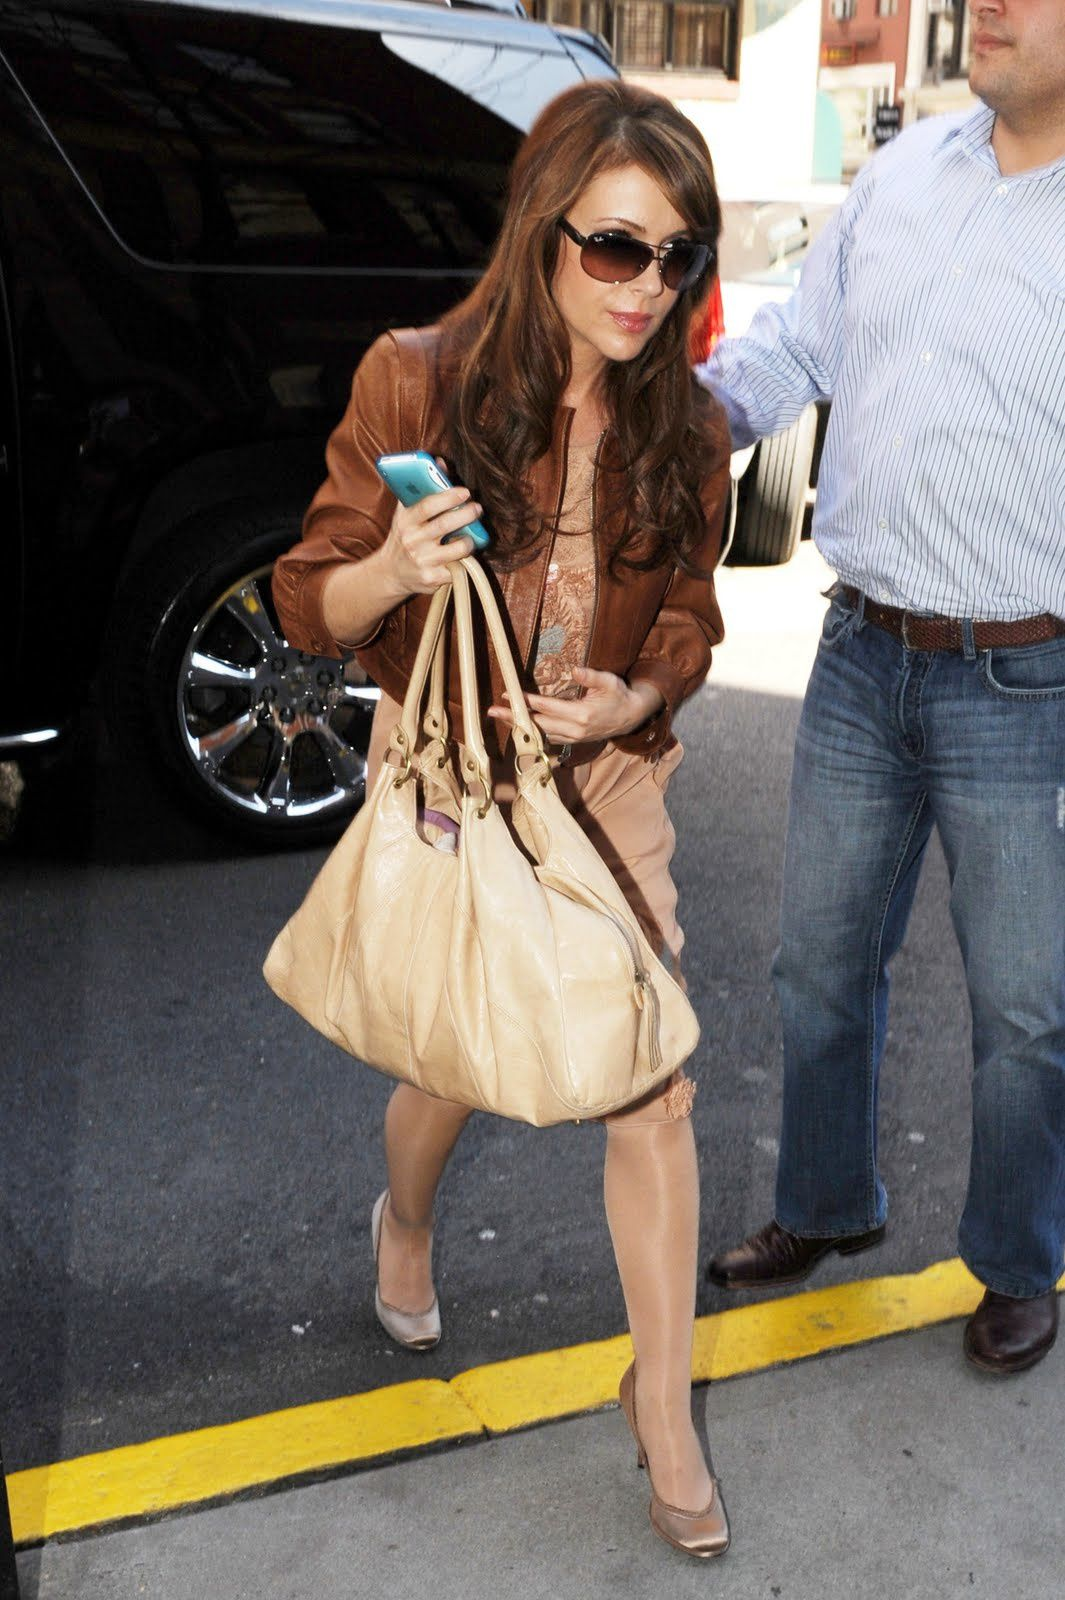 Alyssa_Milano_returns_to_her_Manhattan_hotel_03.31.09_314_1.jpg